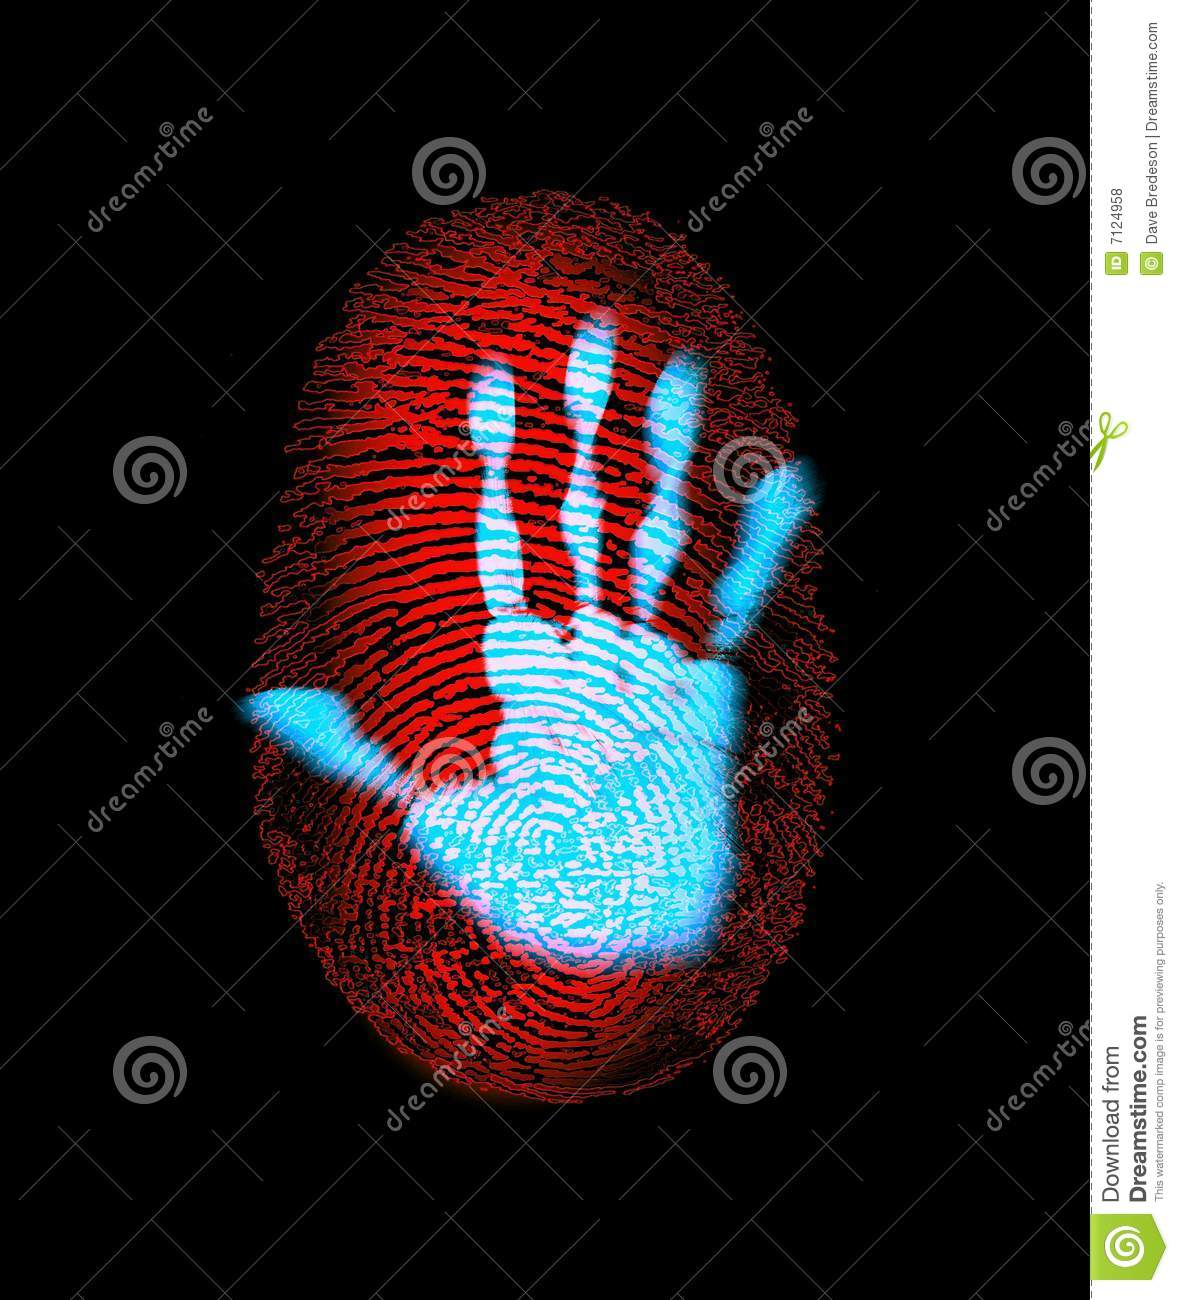 Fingerprint Security Hand Identity Theft Royalty Free